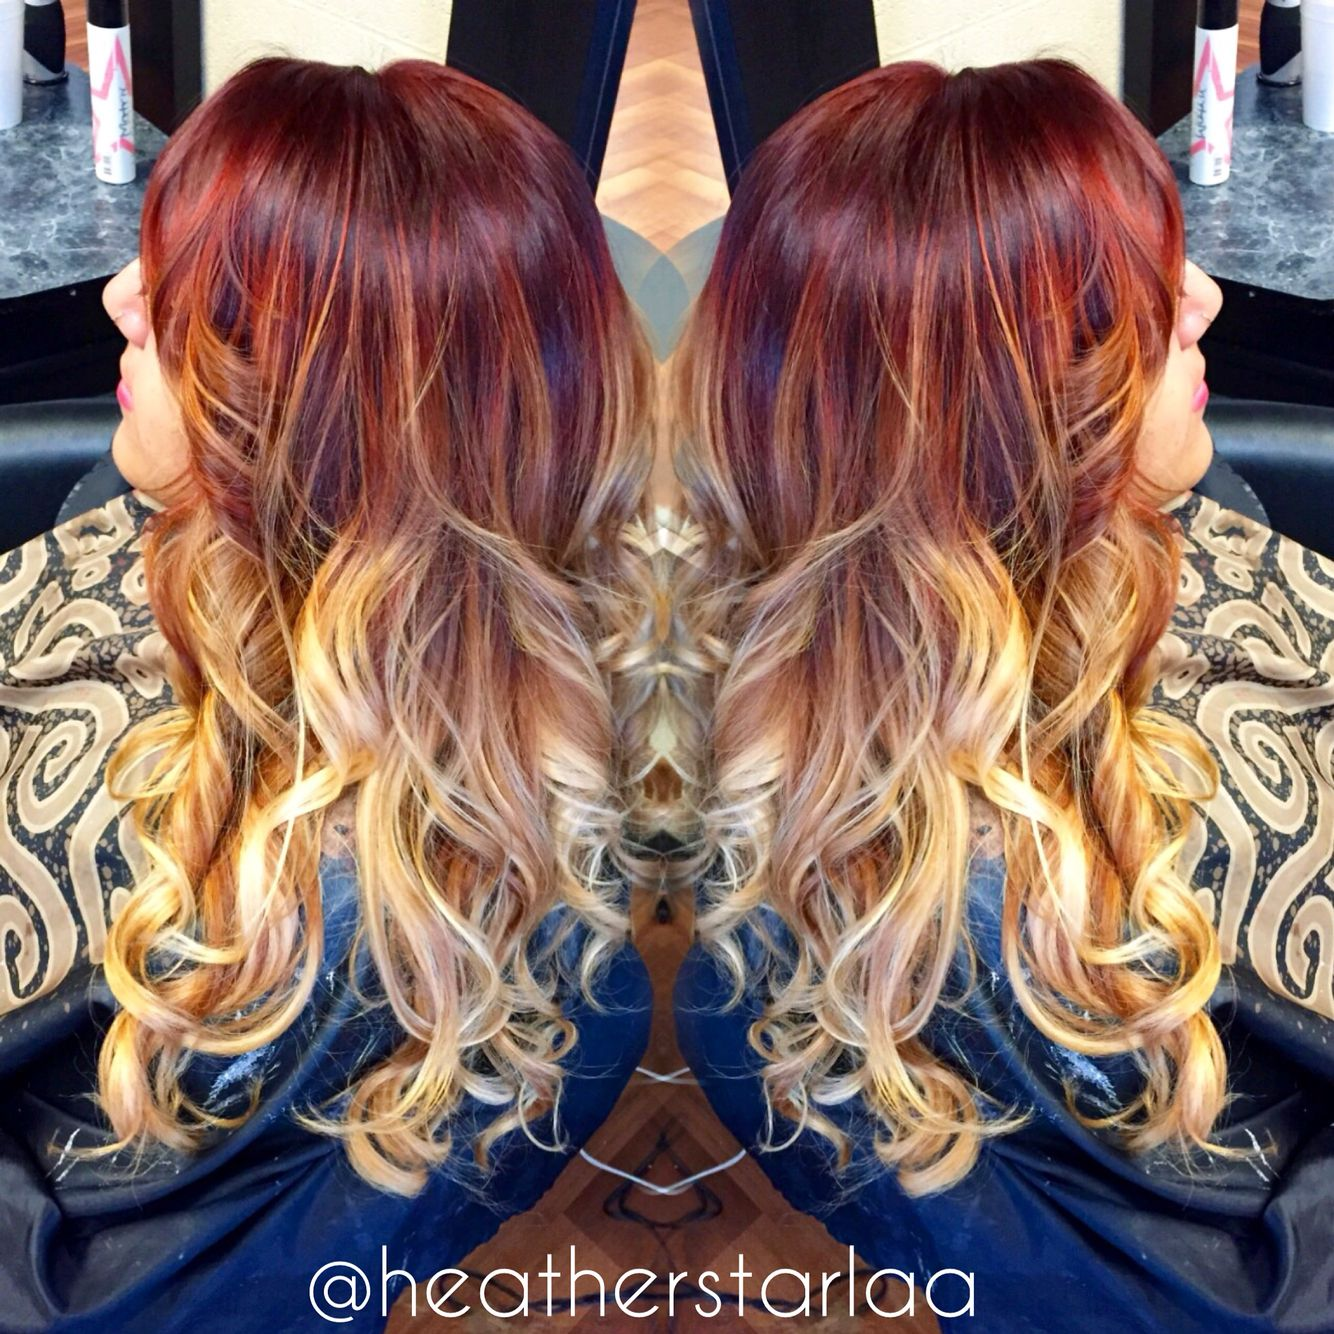 Red And Copper Going Into Blonde Balayage Ombre Hair Color